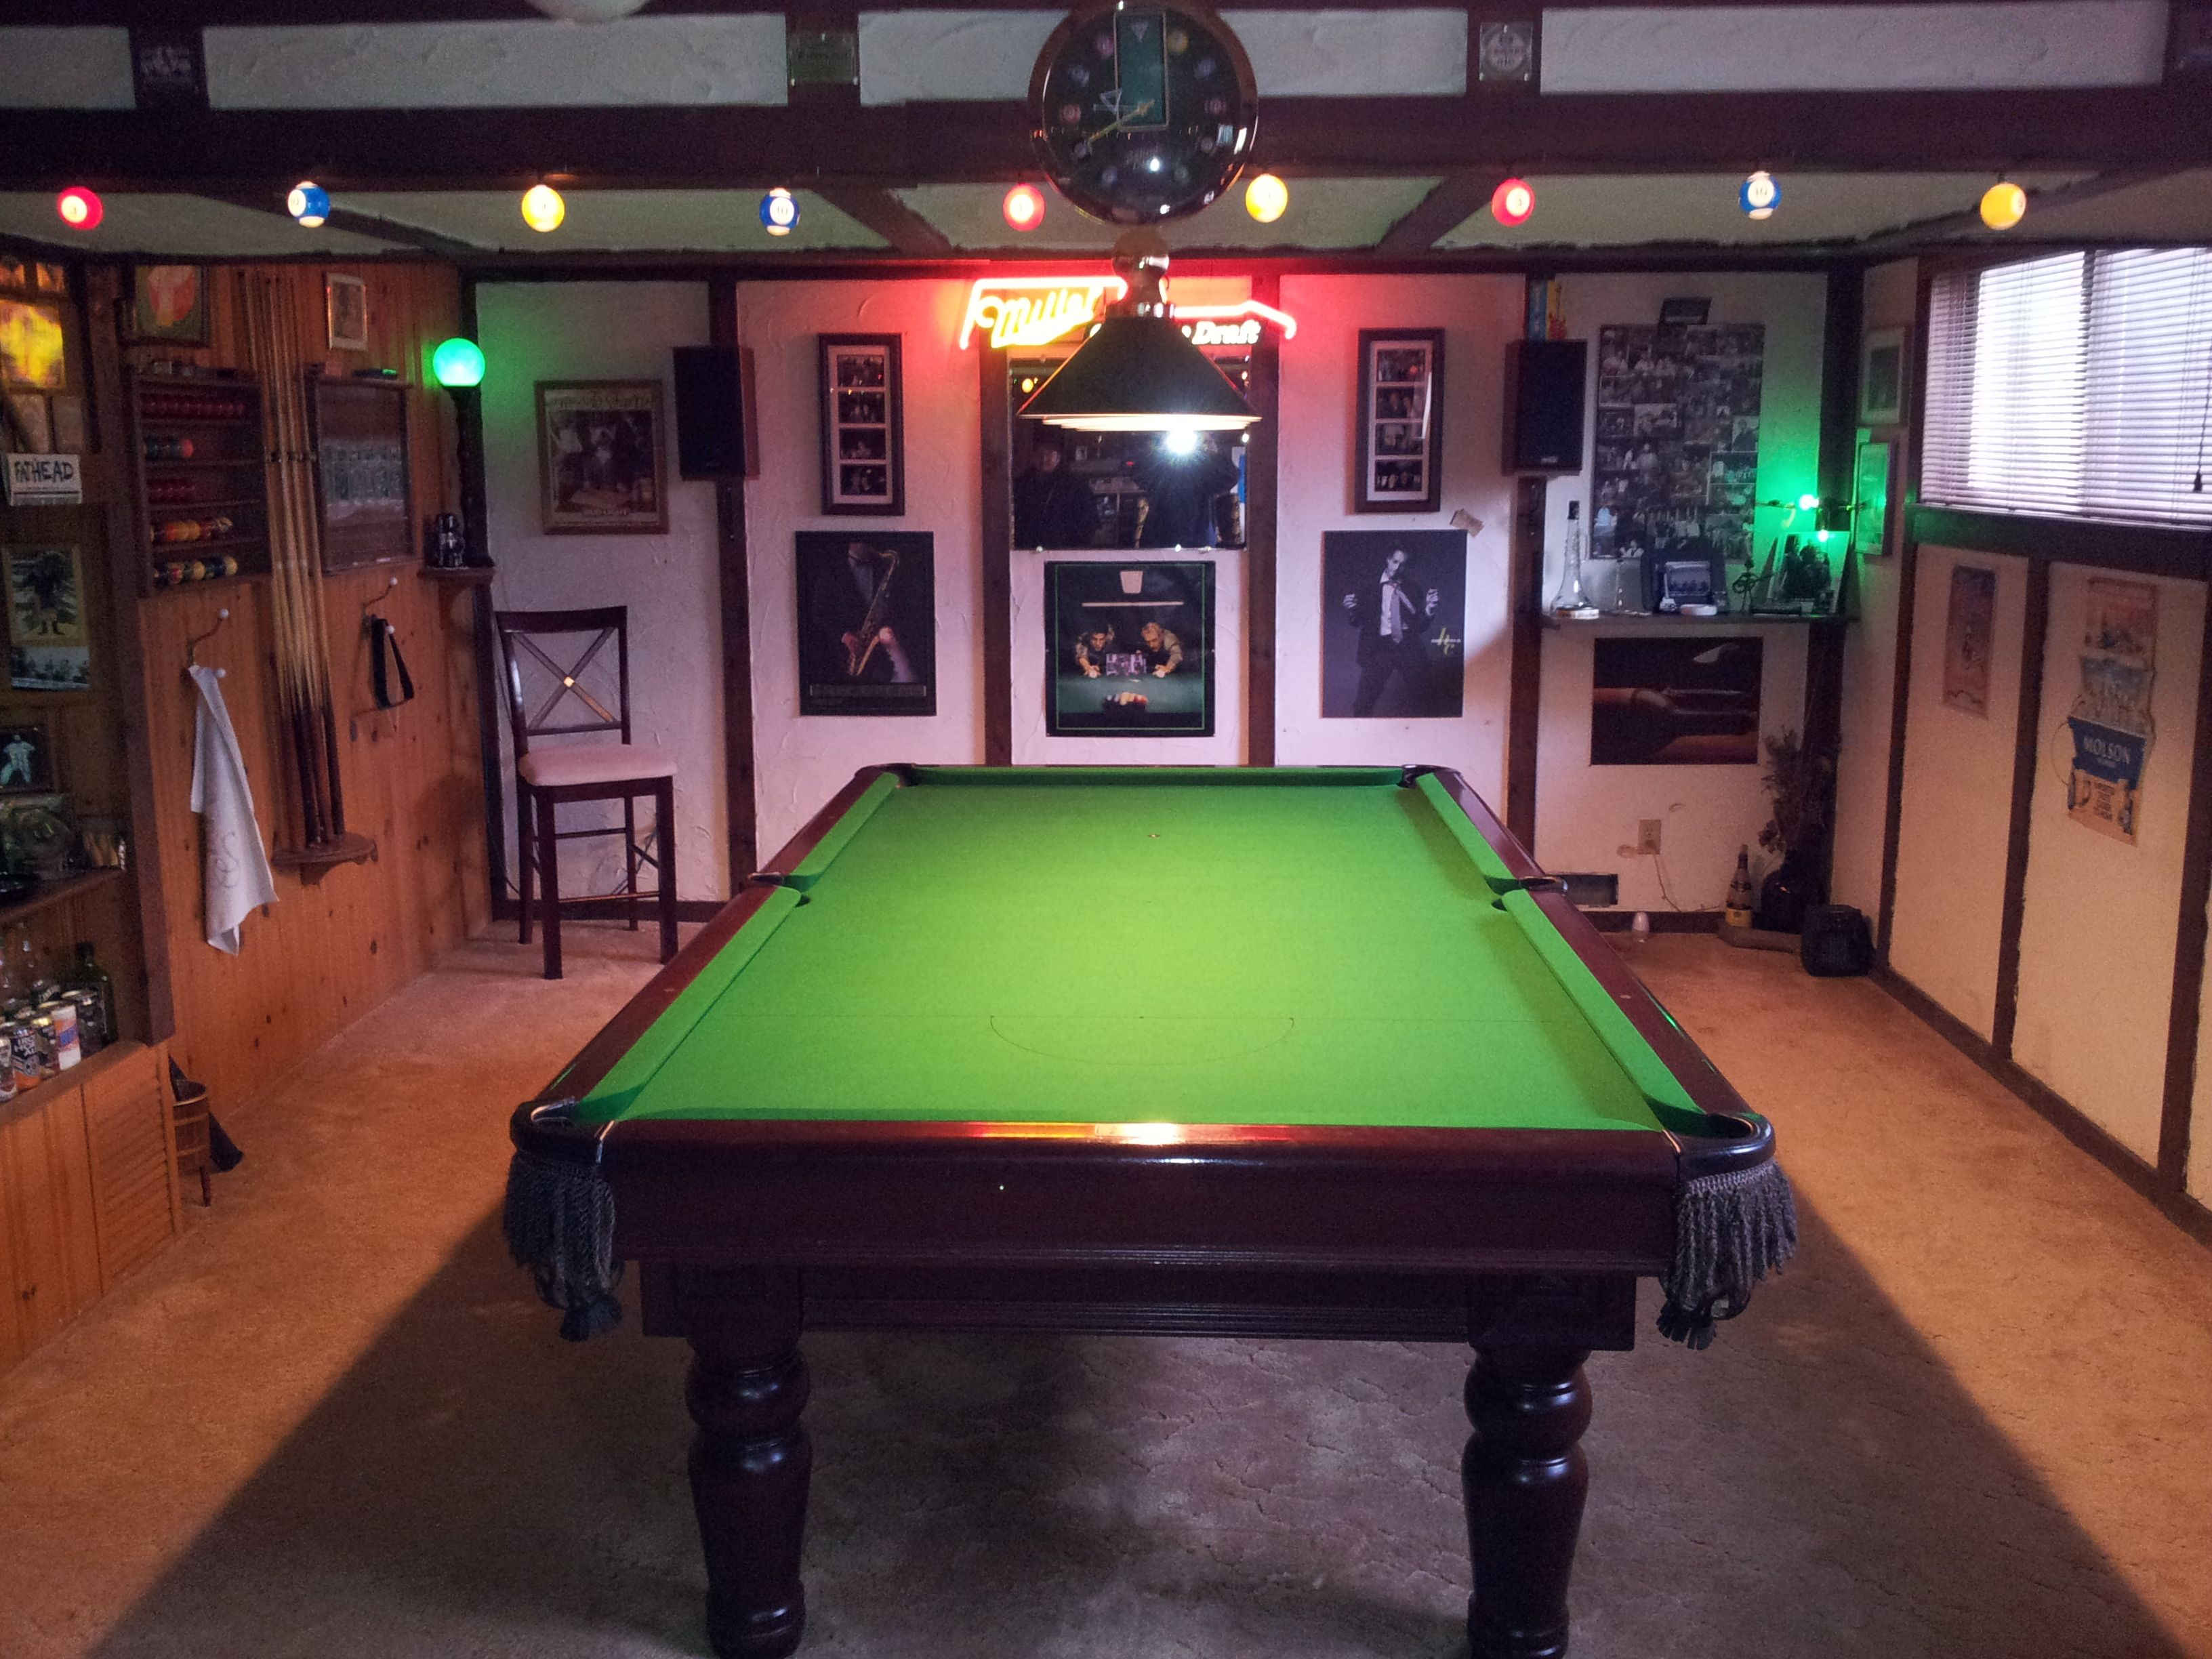 Best Photos, Images, And Pictures Gallery About Pool Table Room Ideas. #pool  Table Room Ideas Man Caves #pool Table Room Ideas Small #pool Table Room  Ideas ...